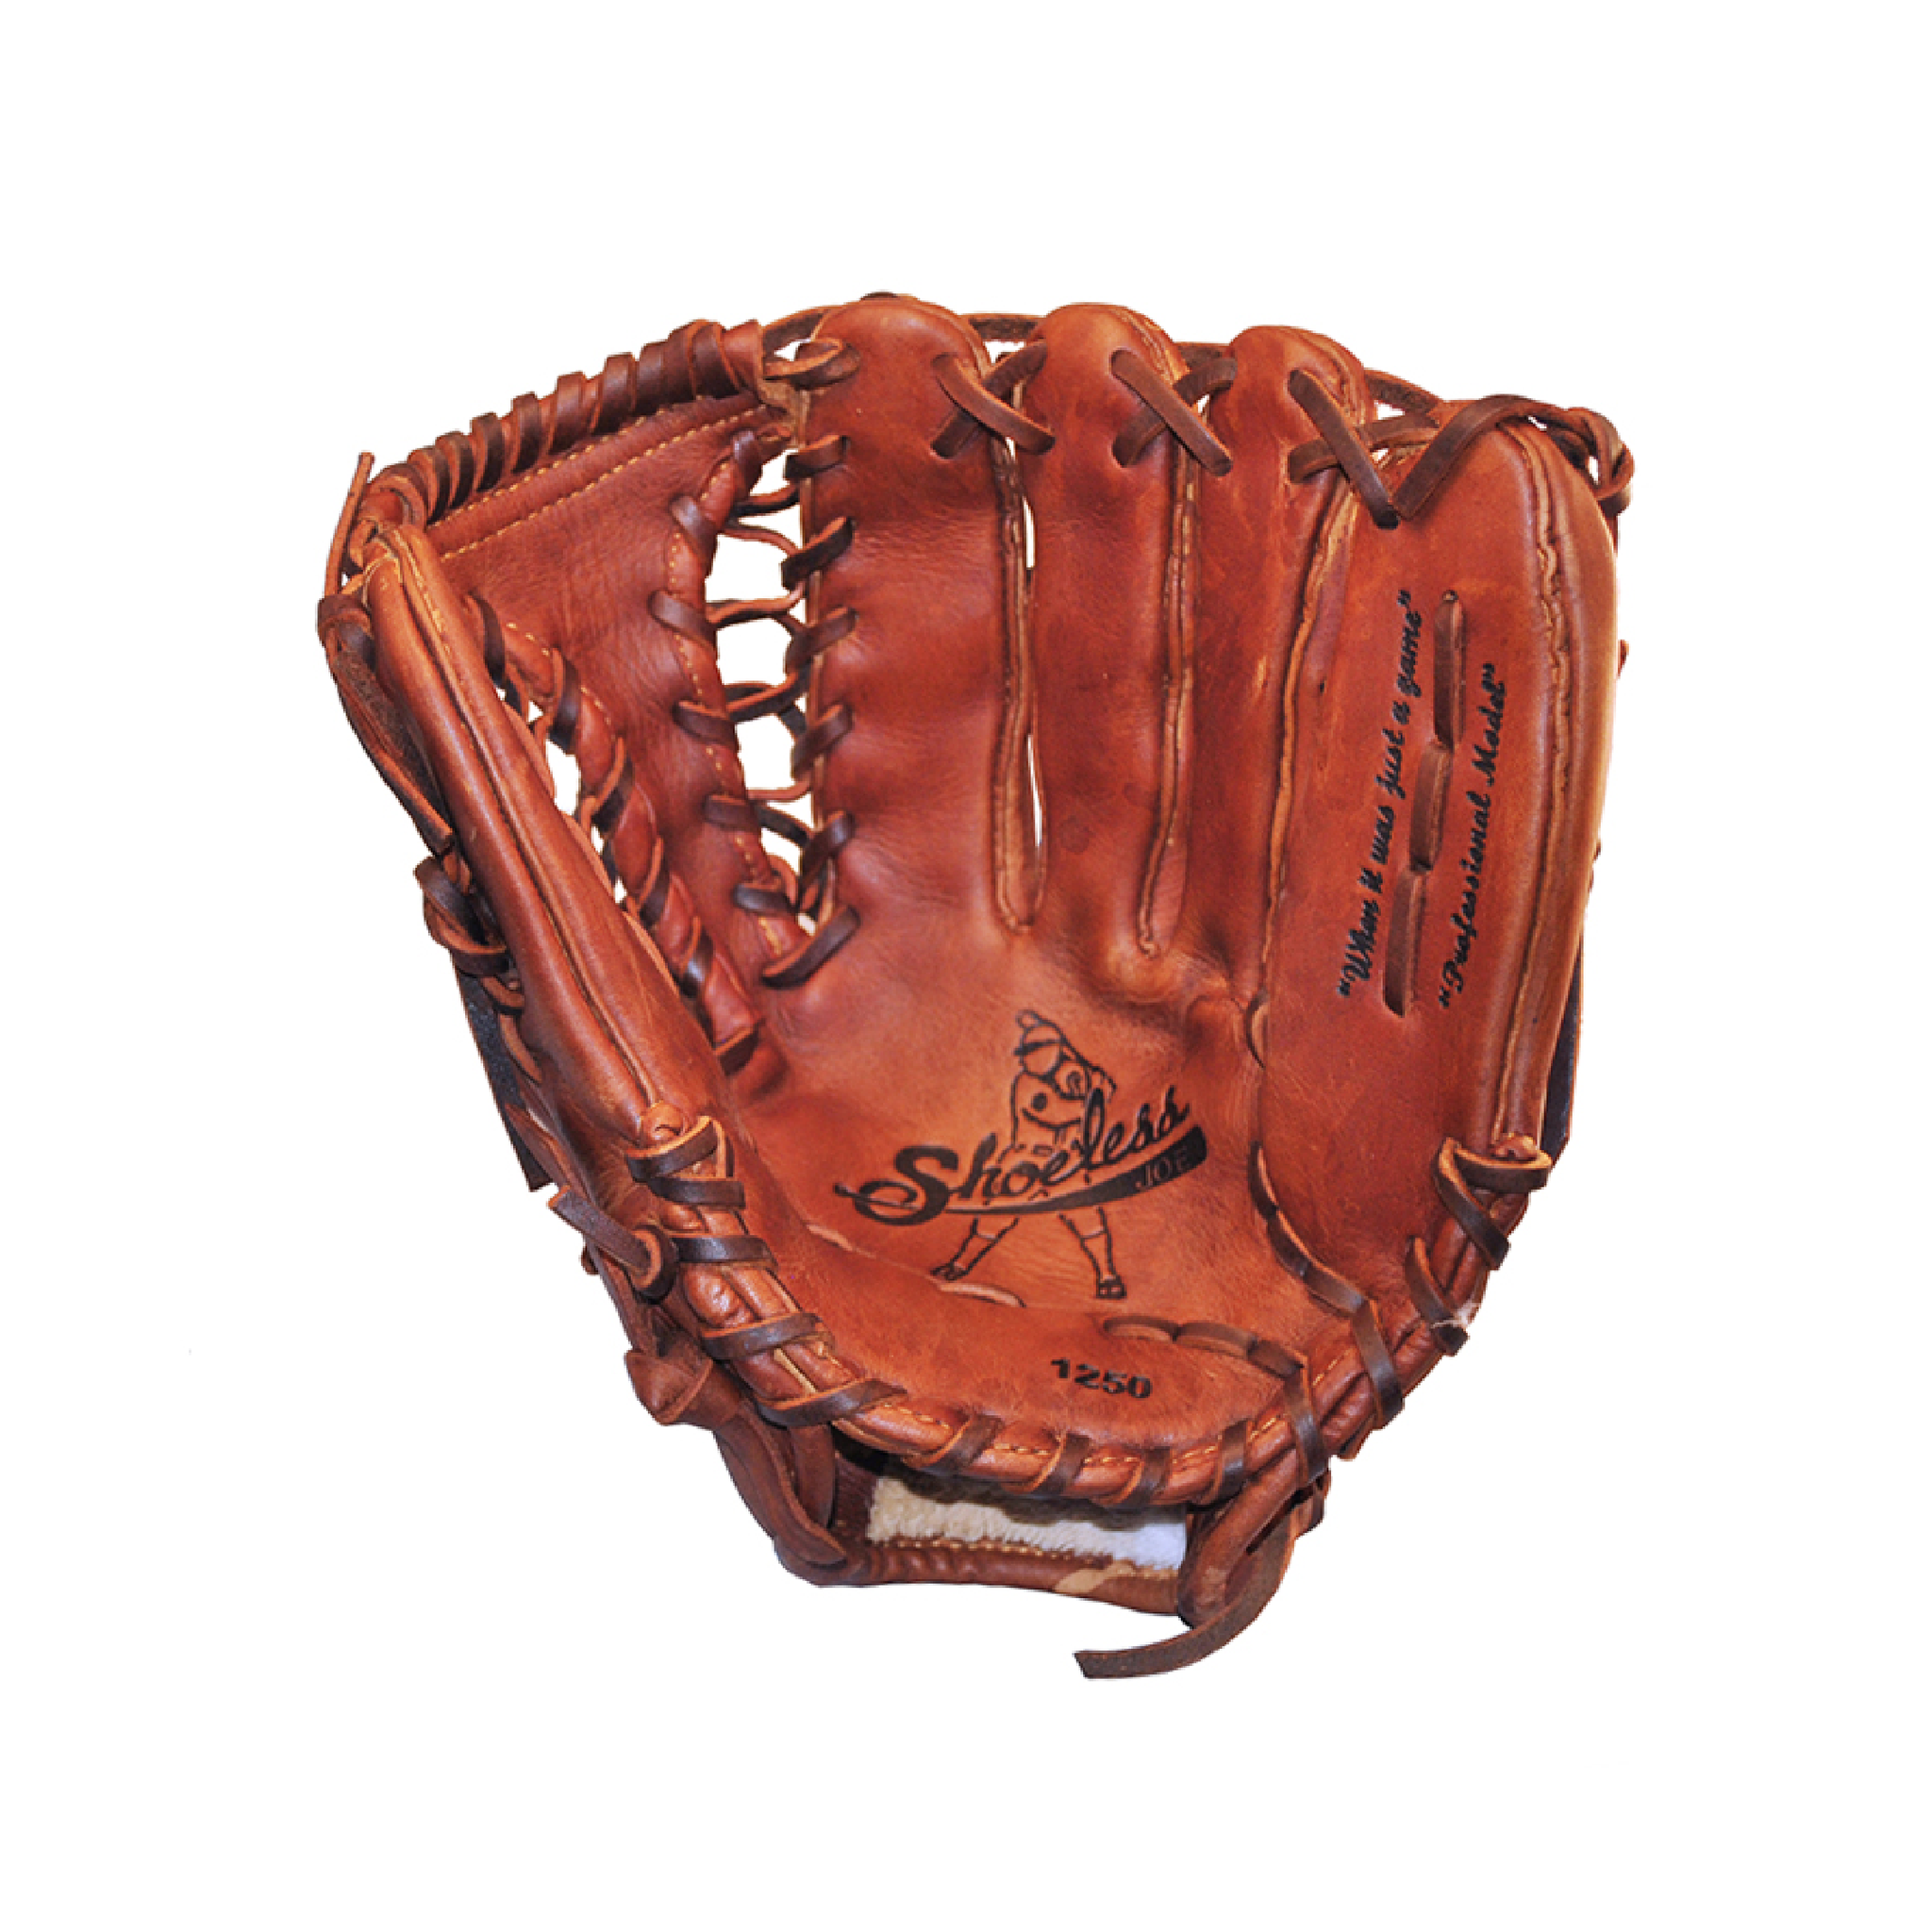 "Shoeless Joe 12.5"" Tennessee Trapper Baseball Glove"